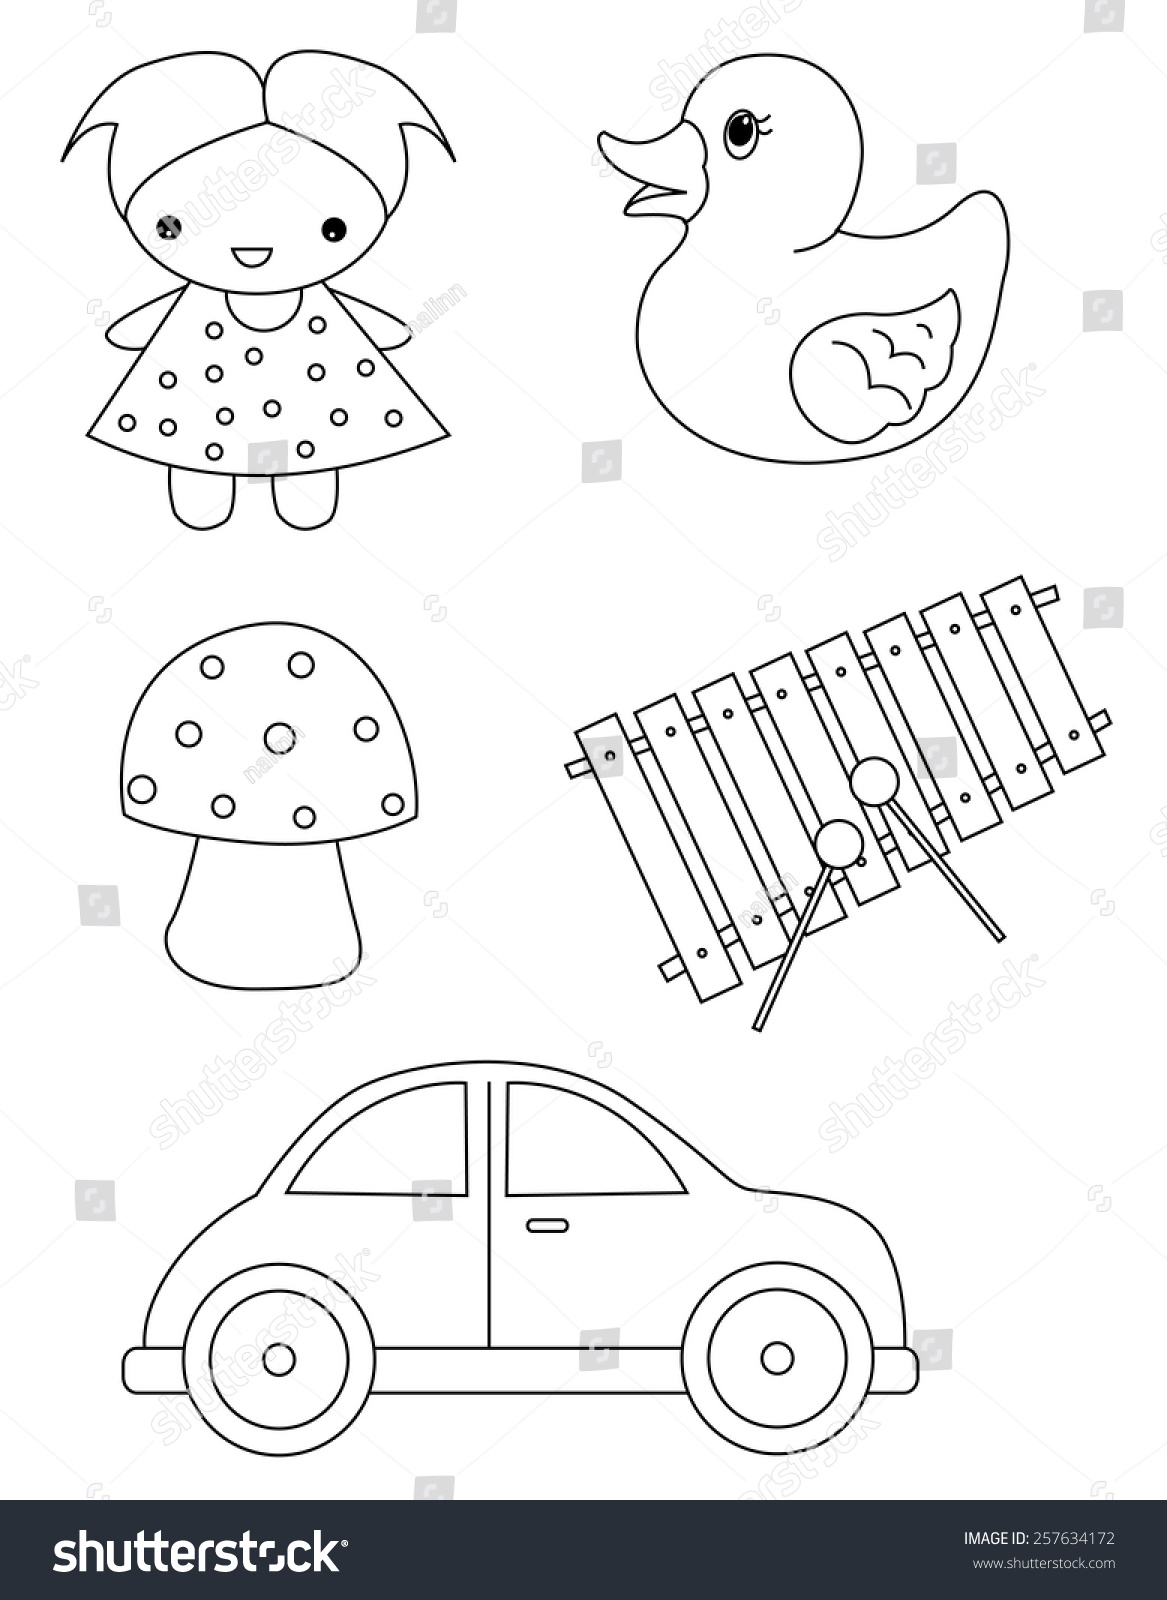 pre kids coloring book page stock vector 257634172